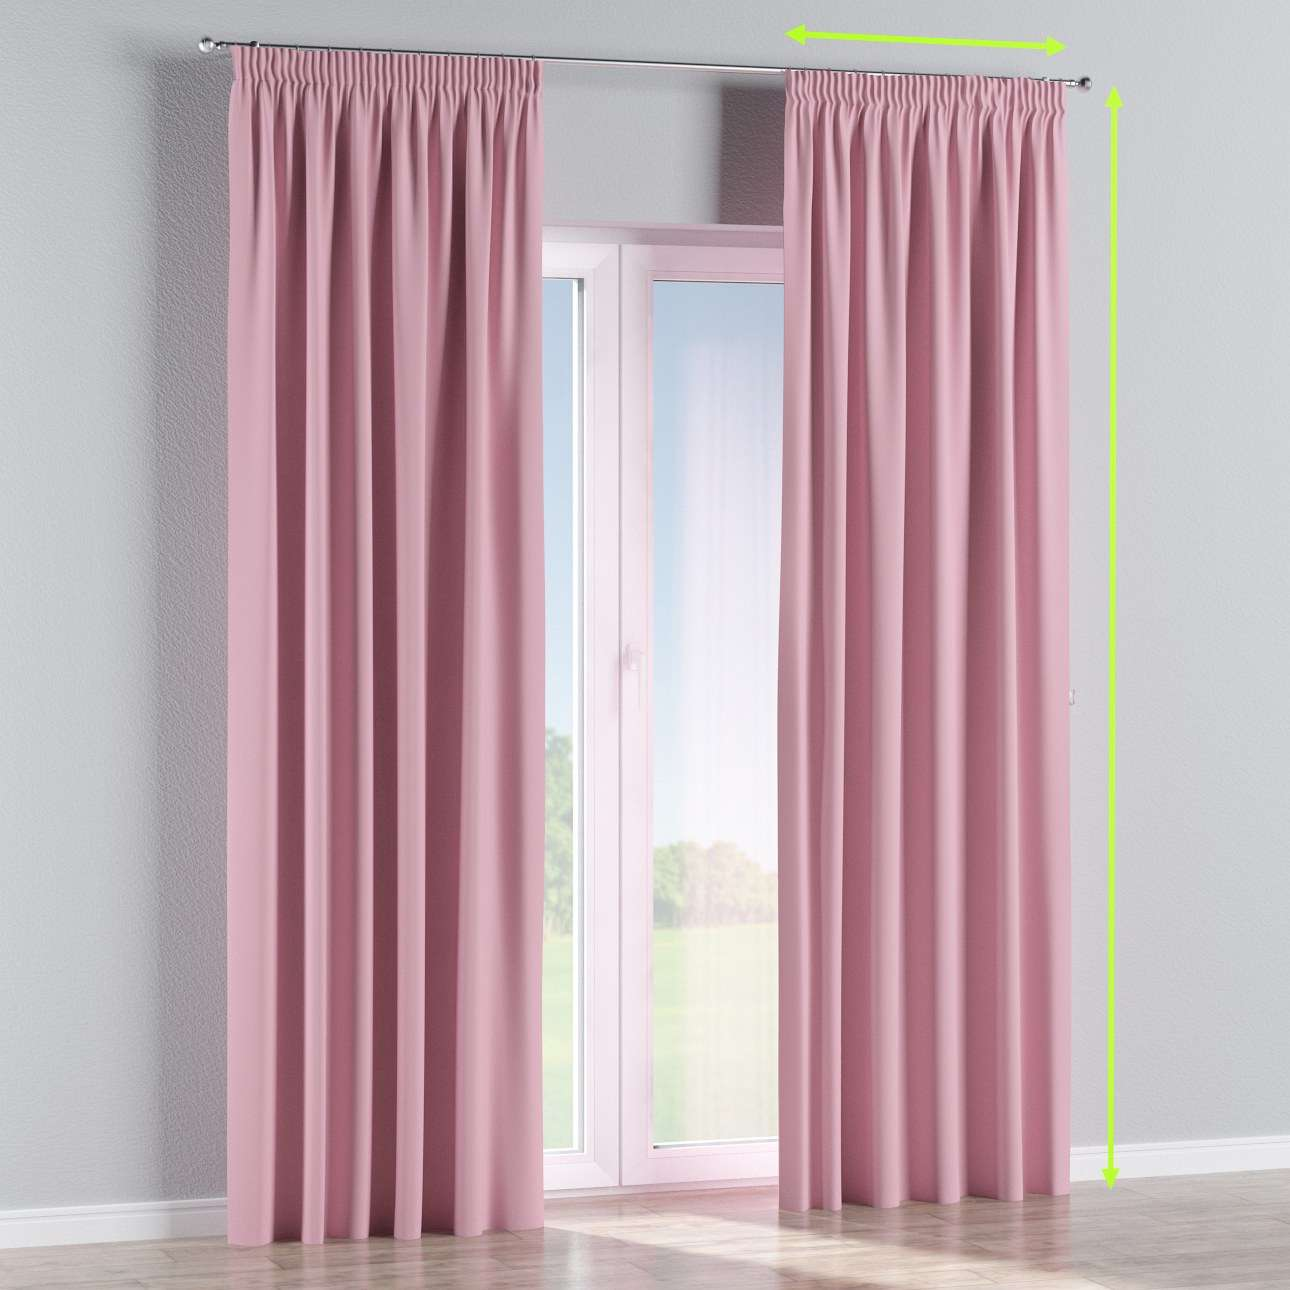 Blackout pencil pleat curtains in collection Blackout, fabric: 269-92